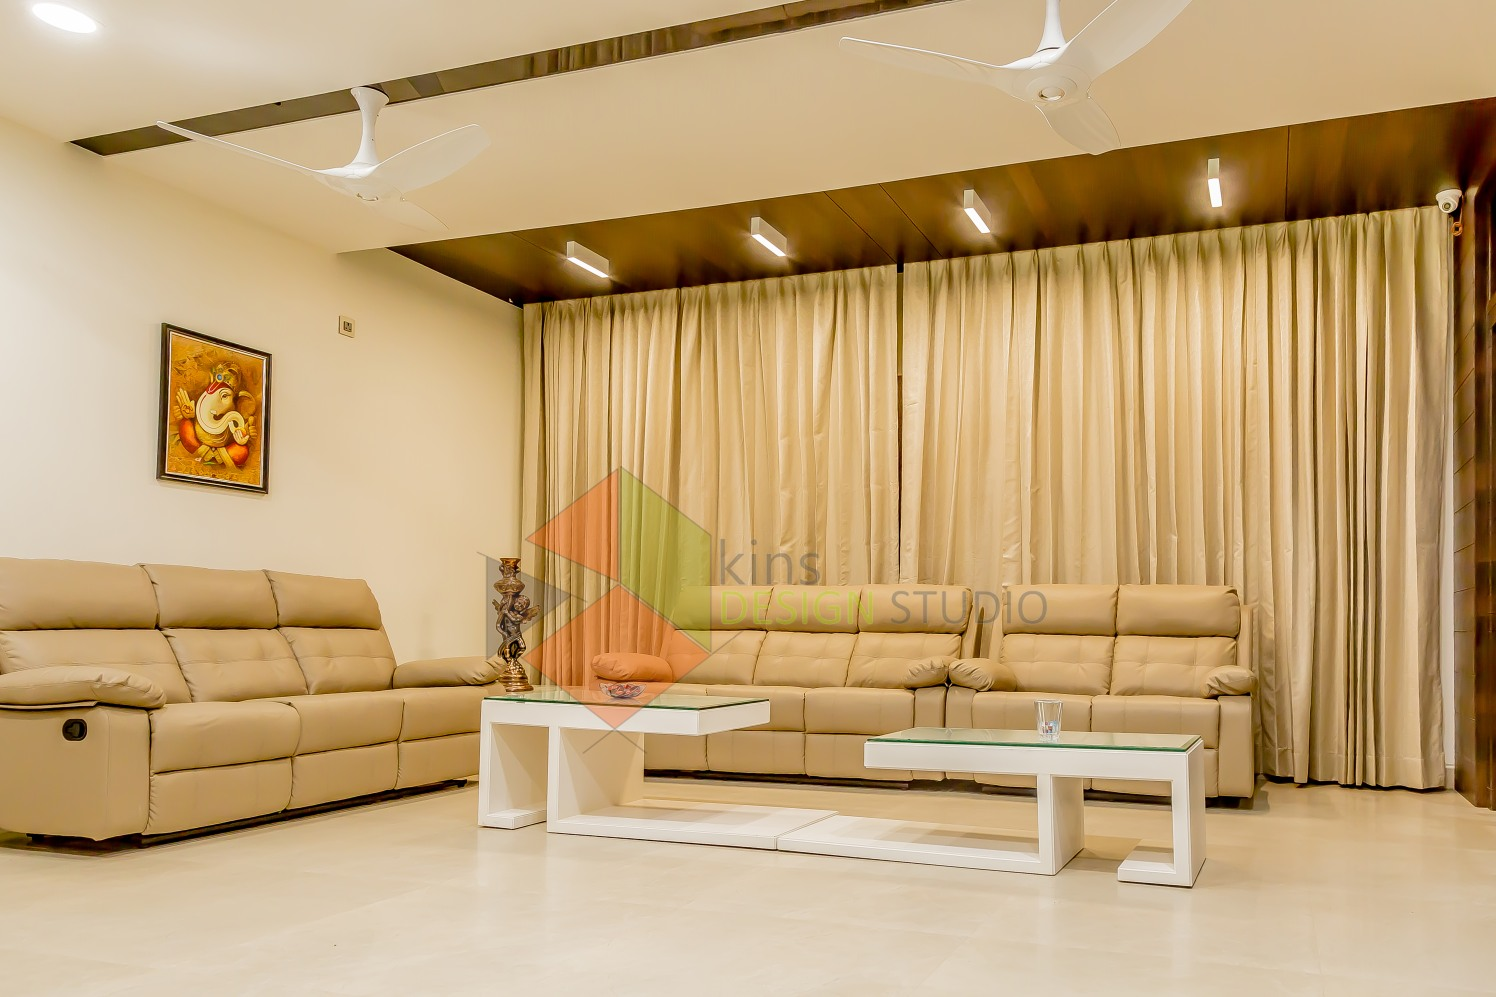 Living Room With Cream Leather Sofas by Kinnera Naresh Living-room Contemporary | Interior Design Photos & Ideas